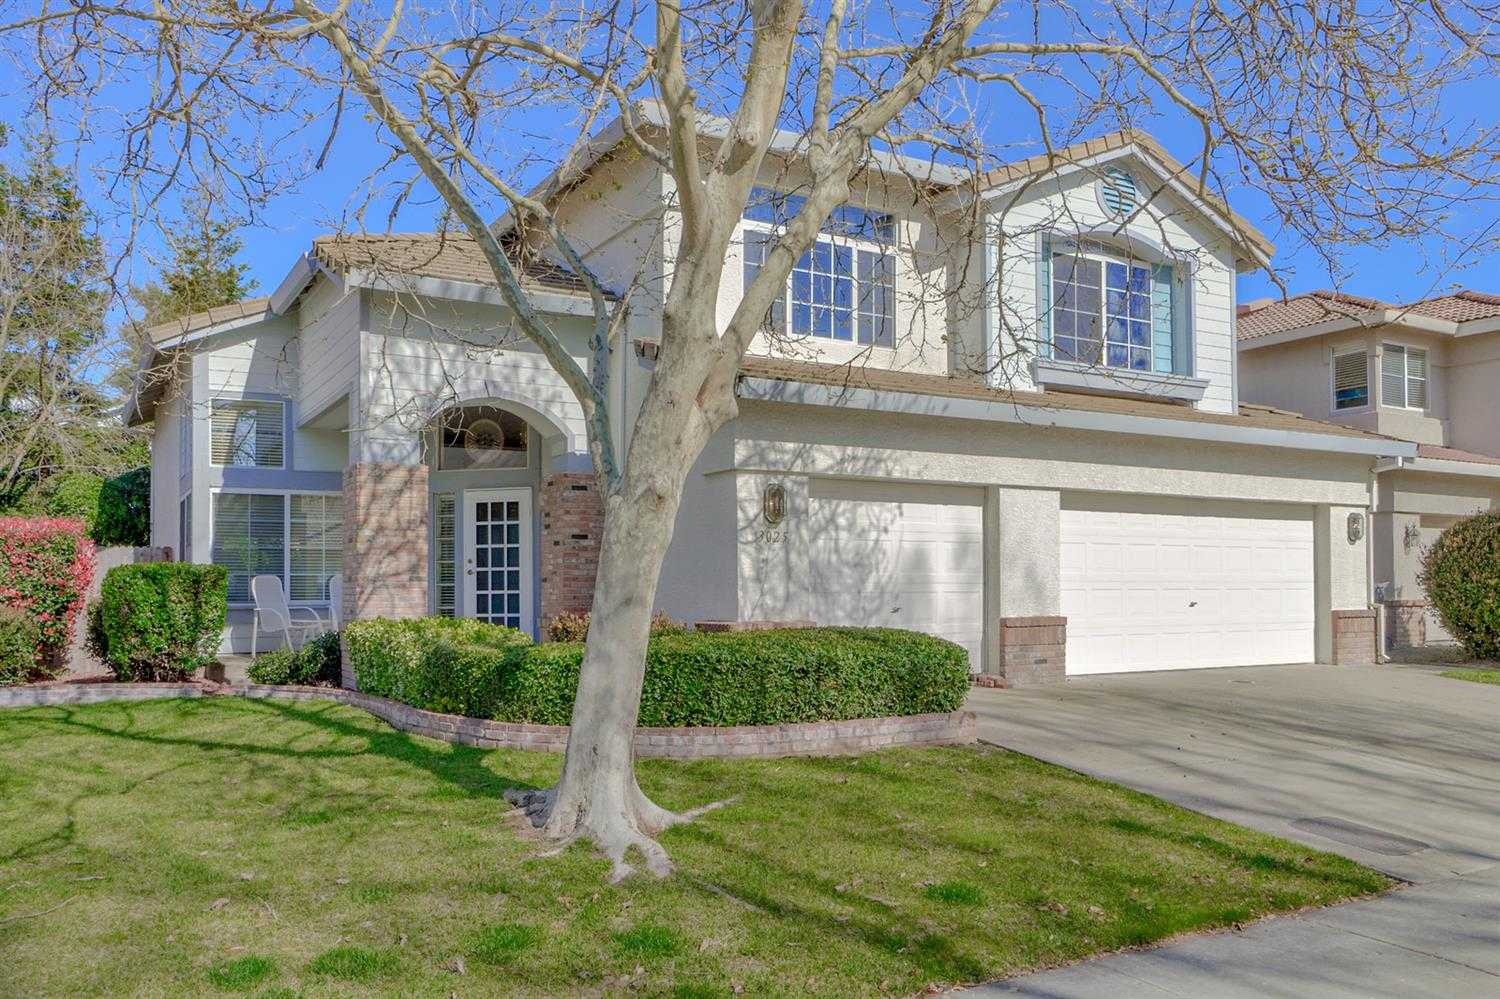 $829,000 - 5Br/3Ba -  for Sale in Mace Park Rench 03, Davis